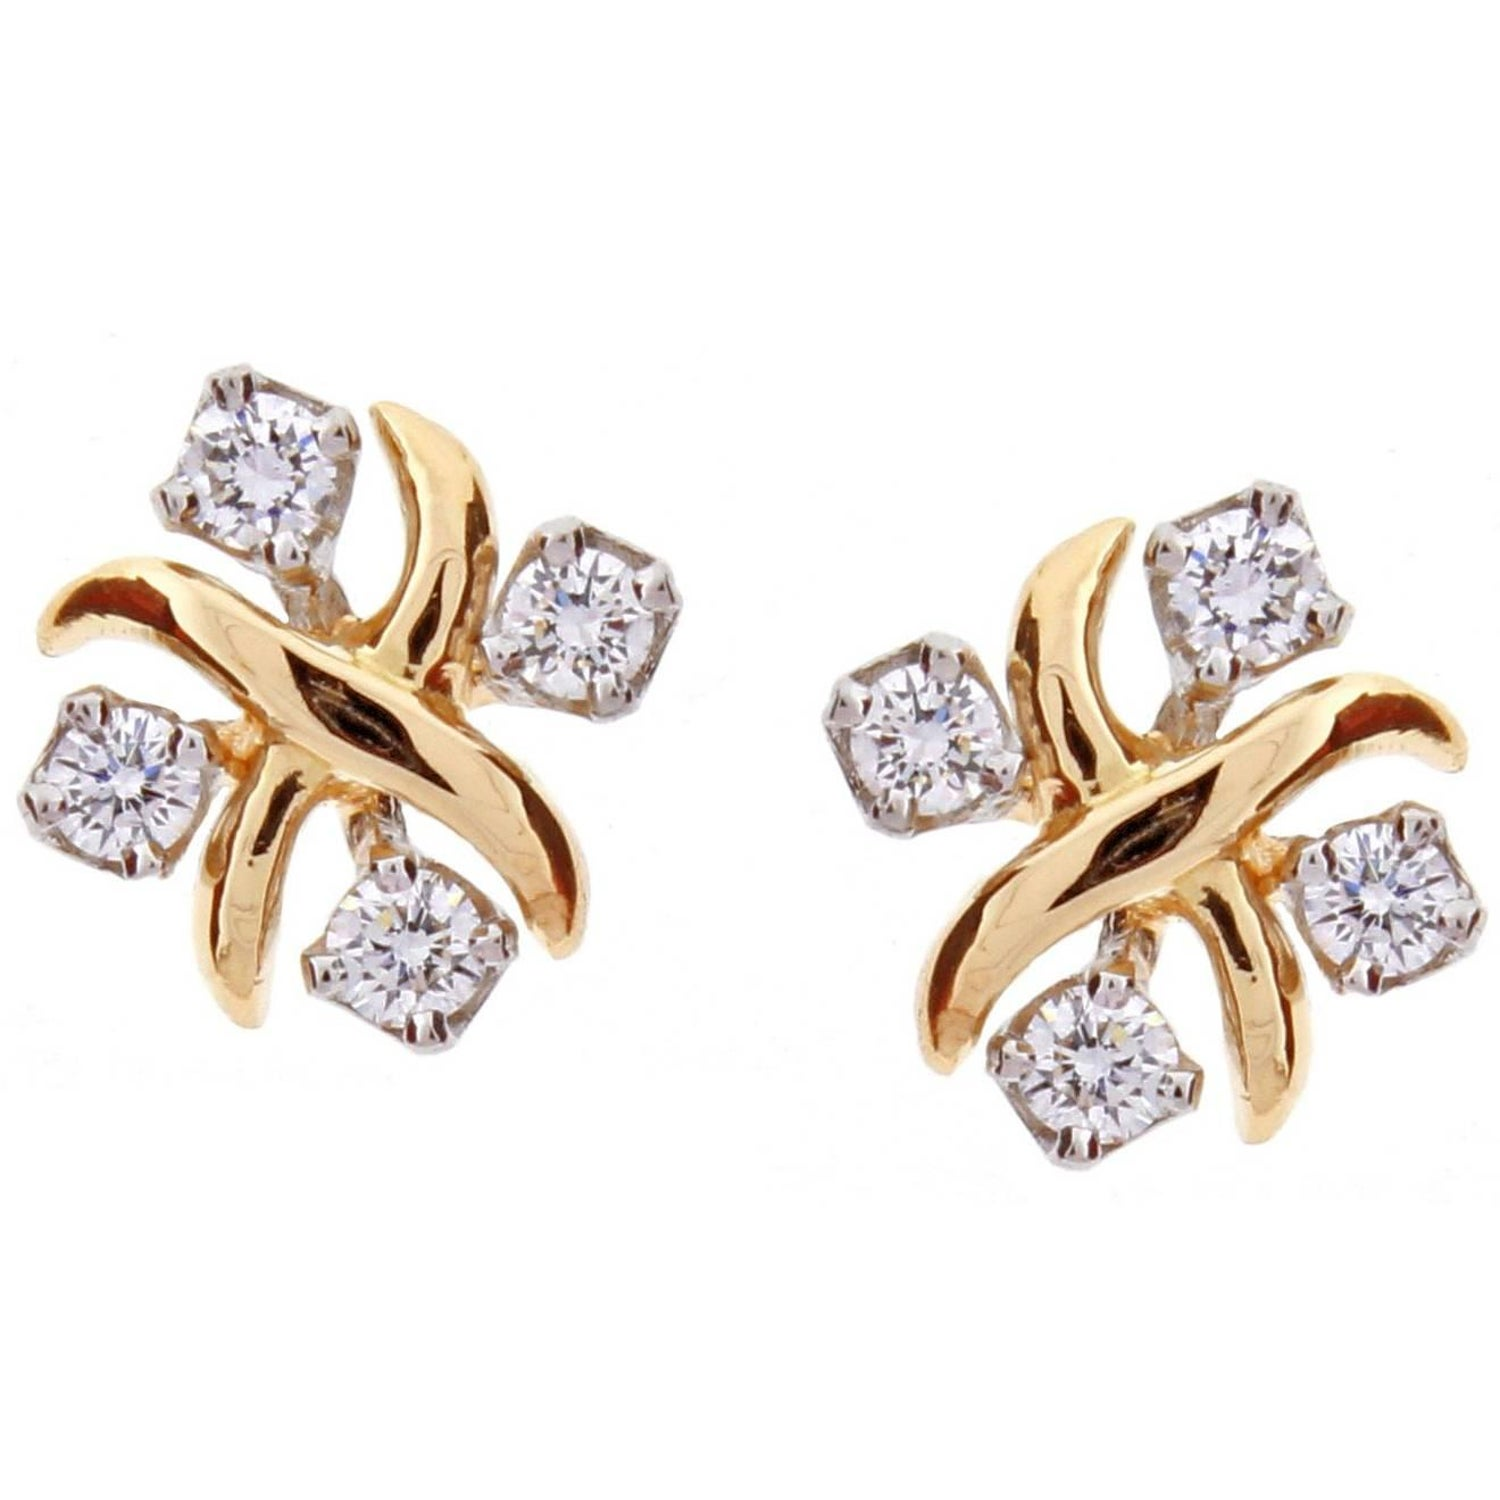 7d255ab13c26 Tiffany and Co. Jean Schlumberger Lynn Diamond Pink Gold Platinum Earrings  at 1stdibs